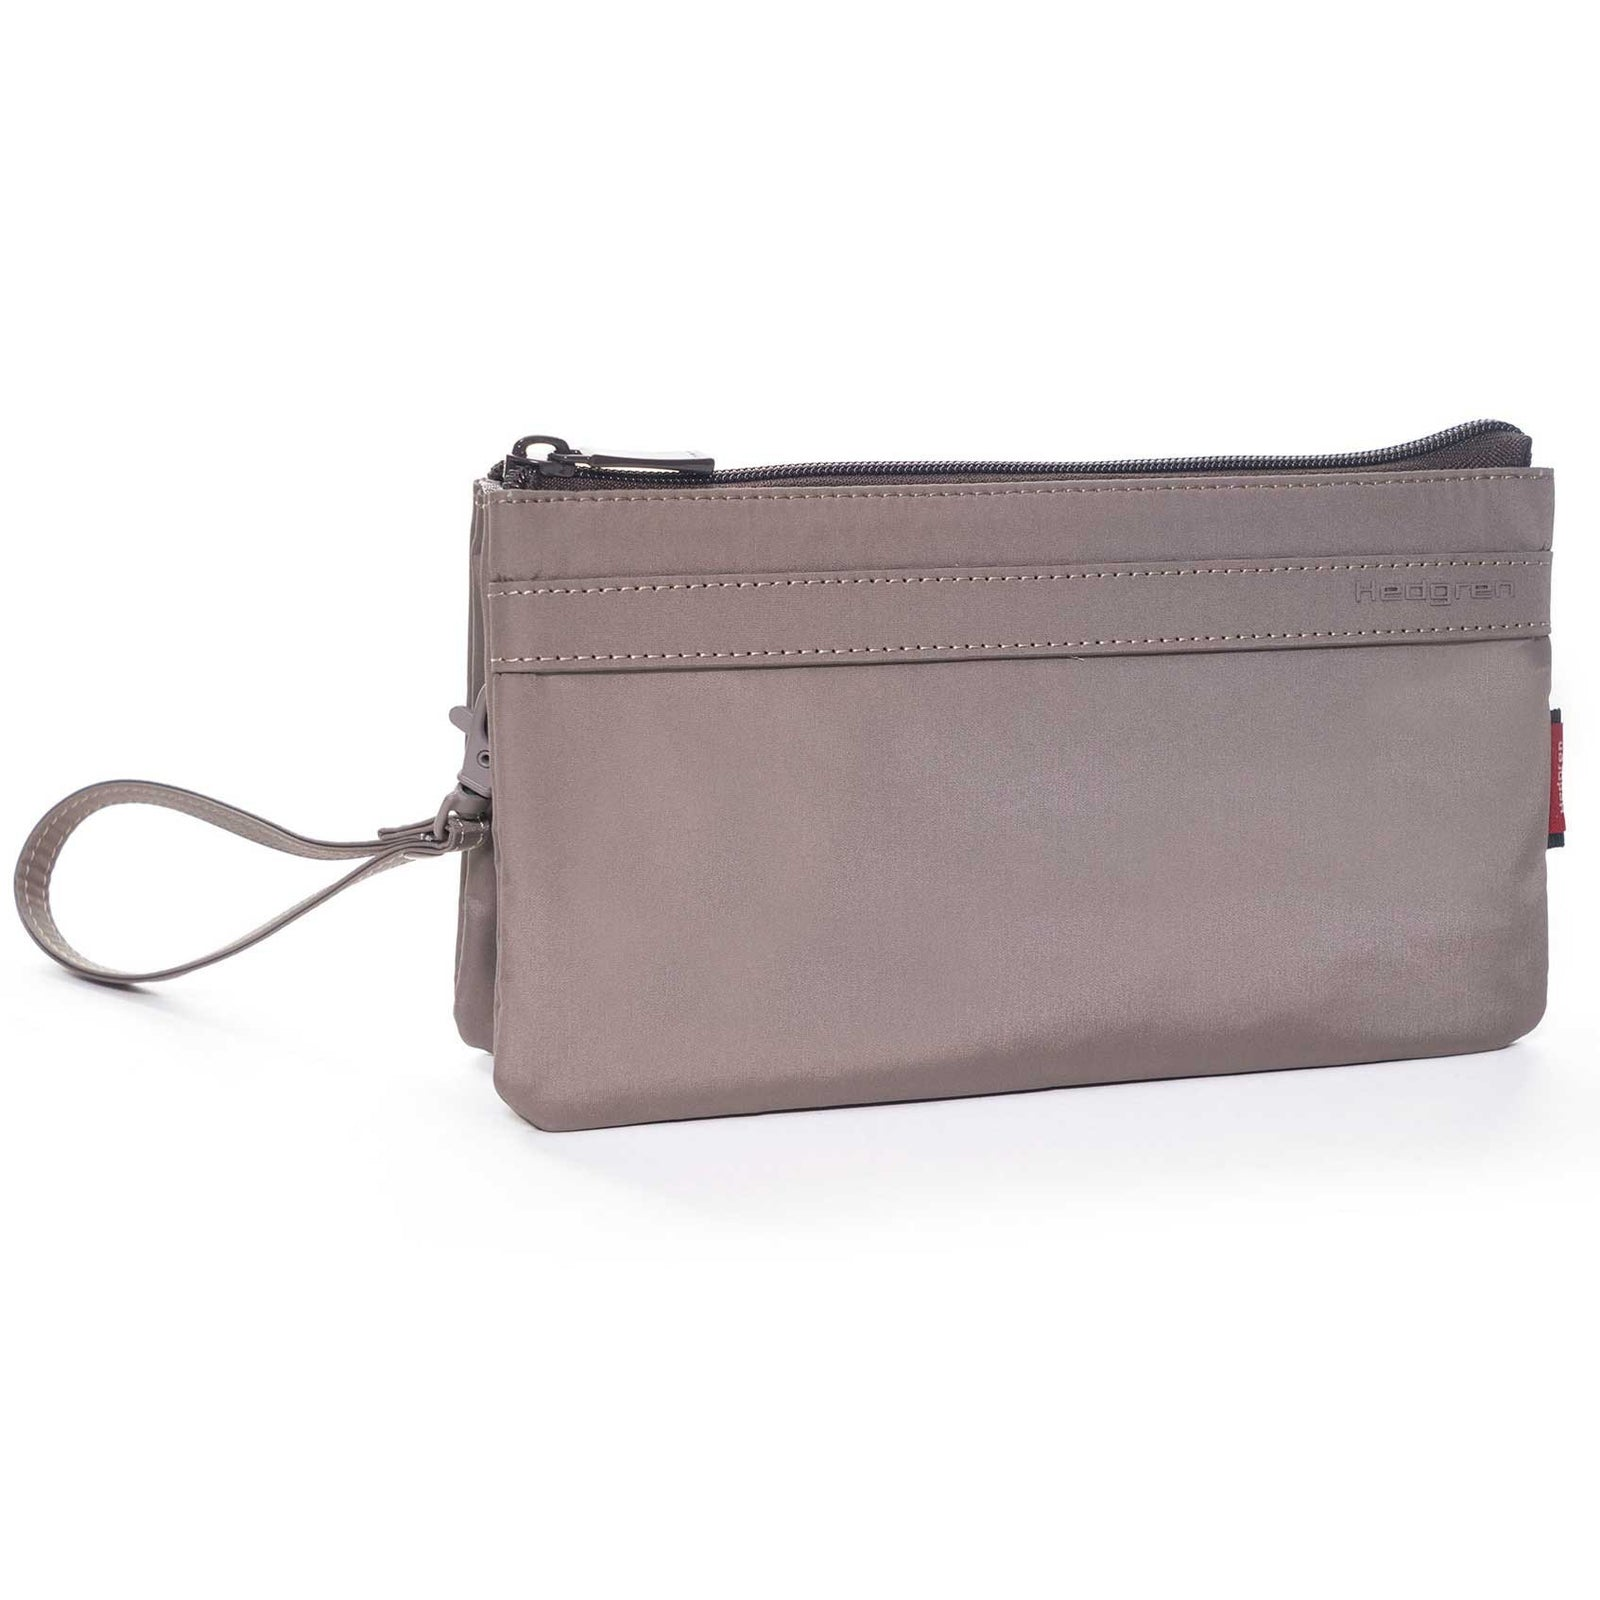 Hedgren Follis Pouch FRANC XL